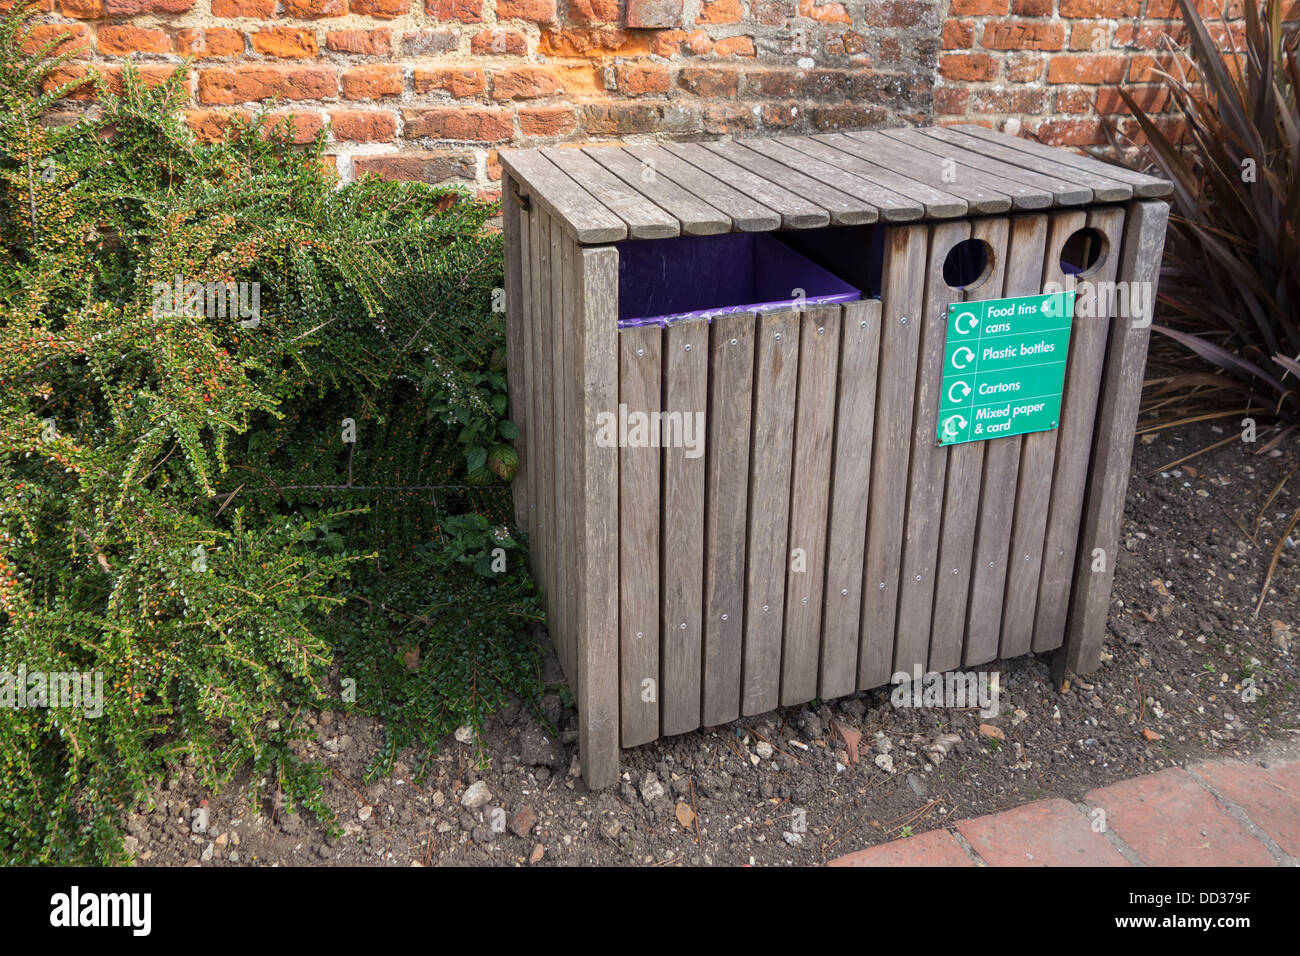 A wooden recycle bin in a park for recycling tins bottles cartons paper and card - Stock Image